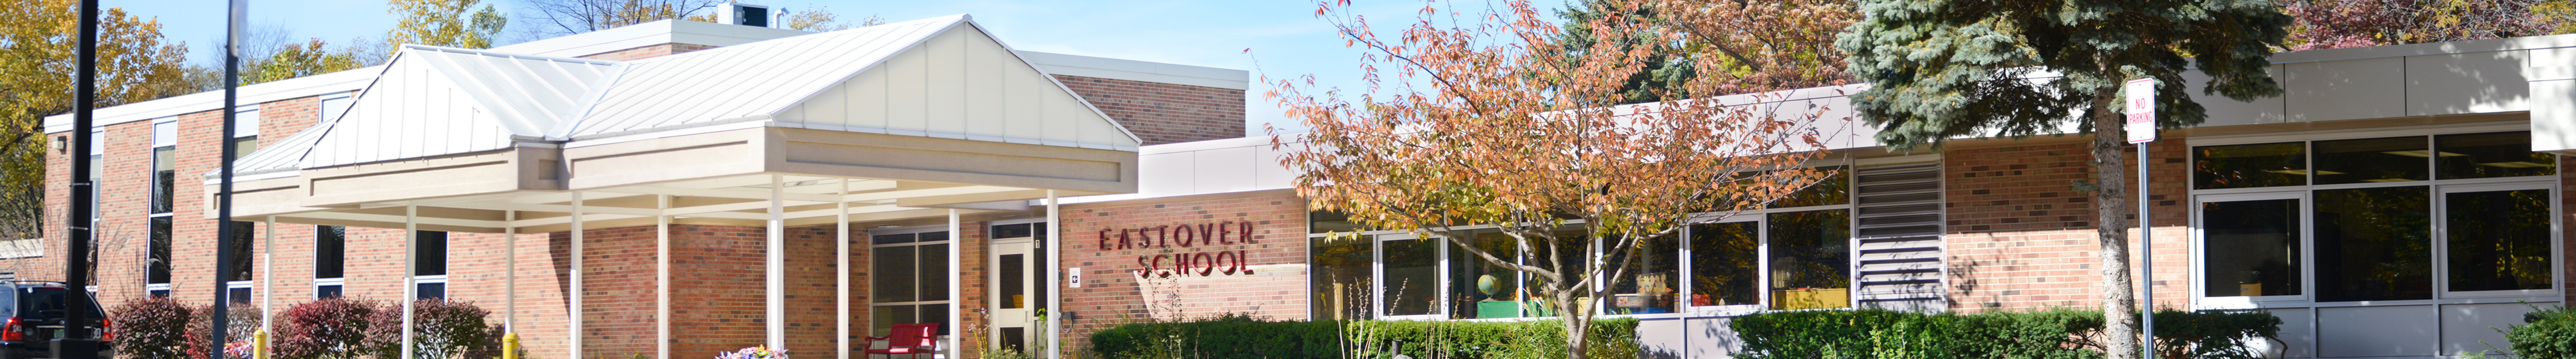 Eastover Elementary Building